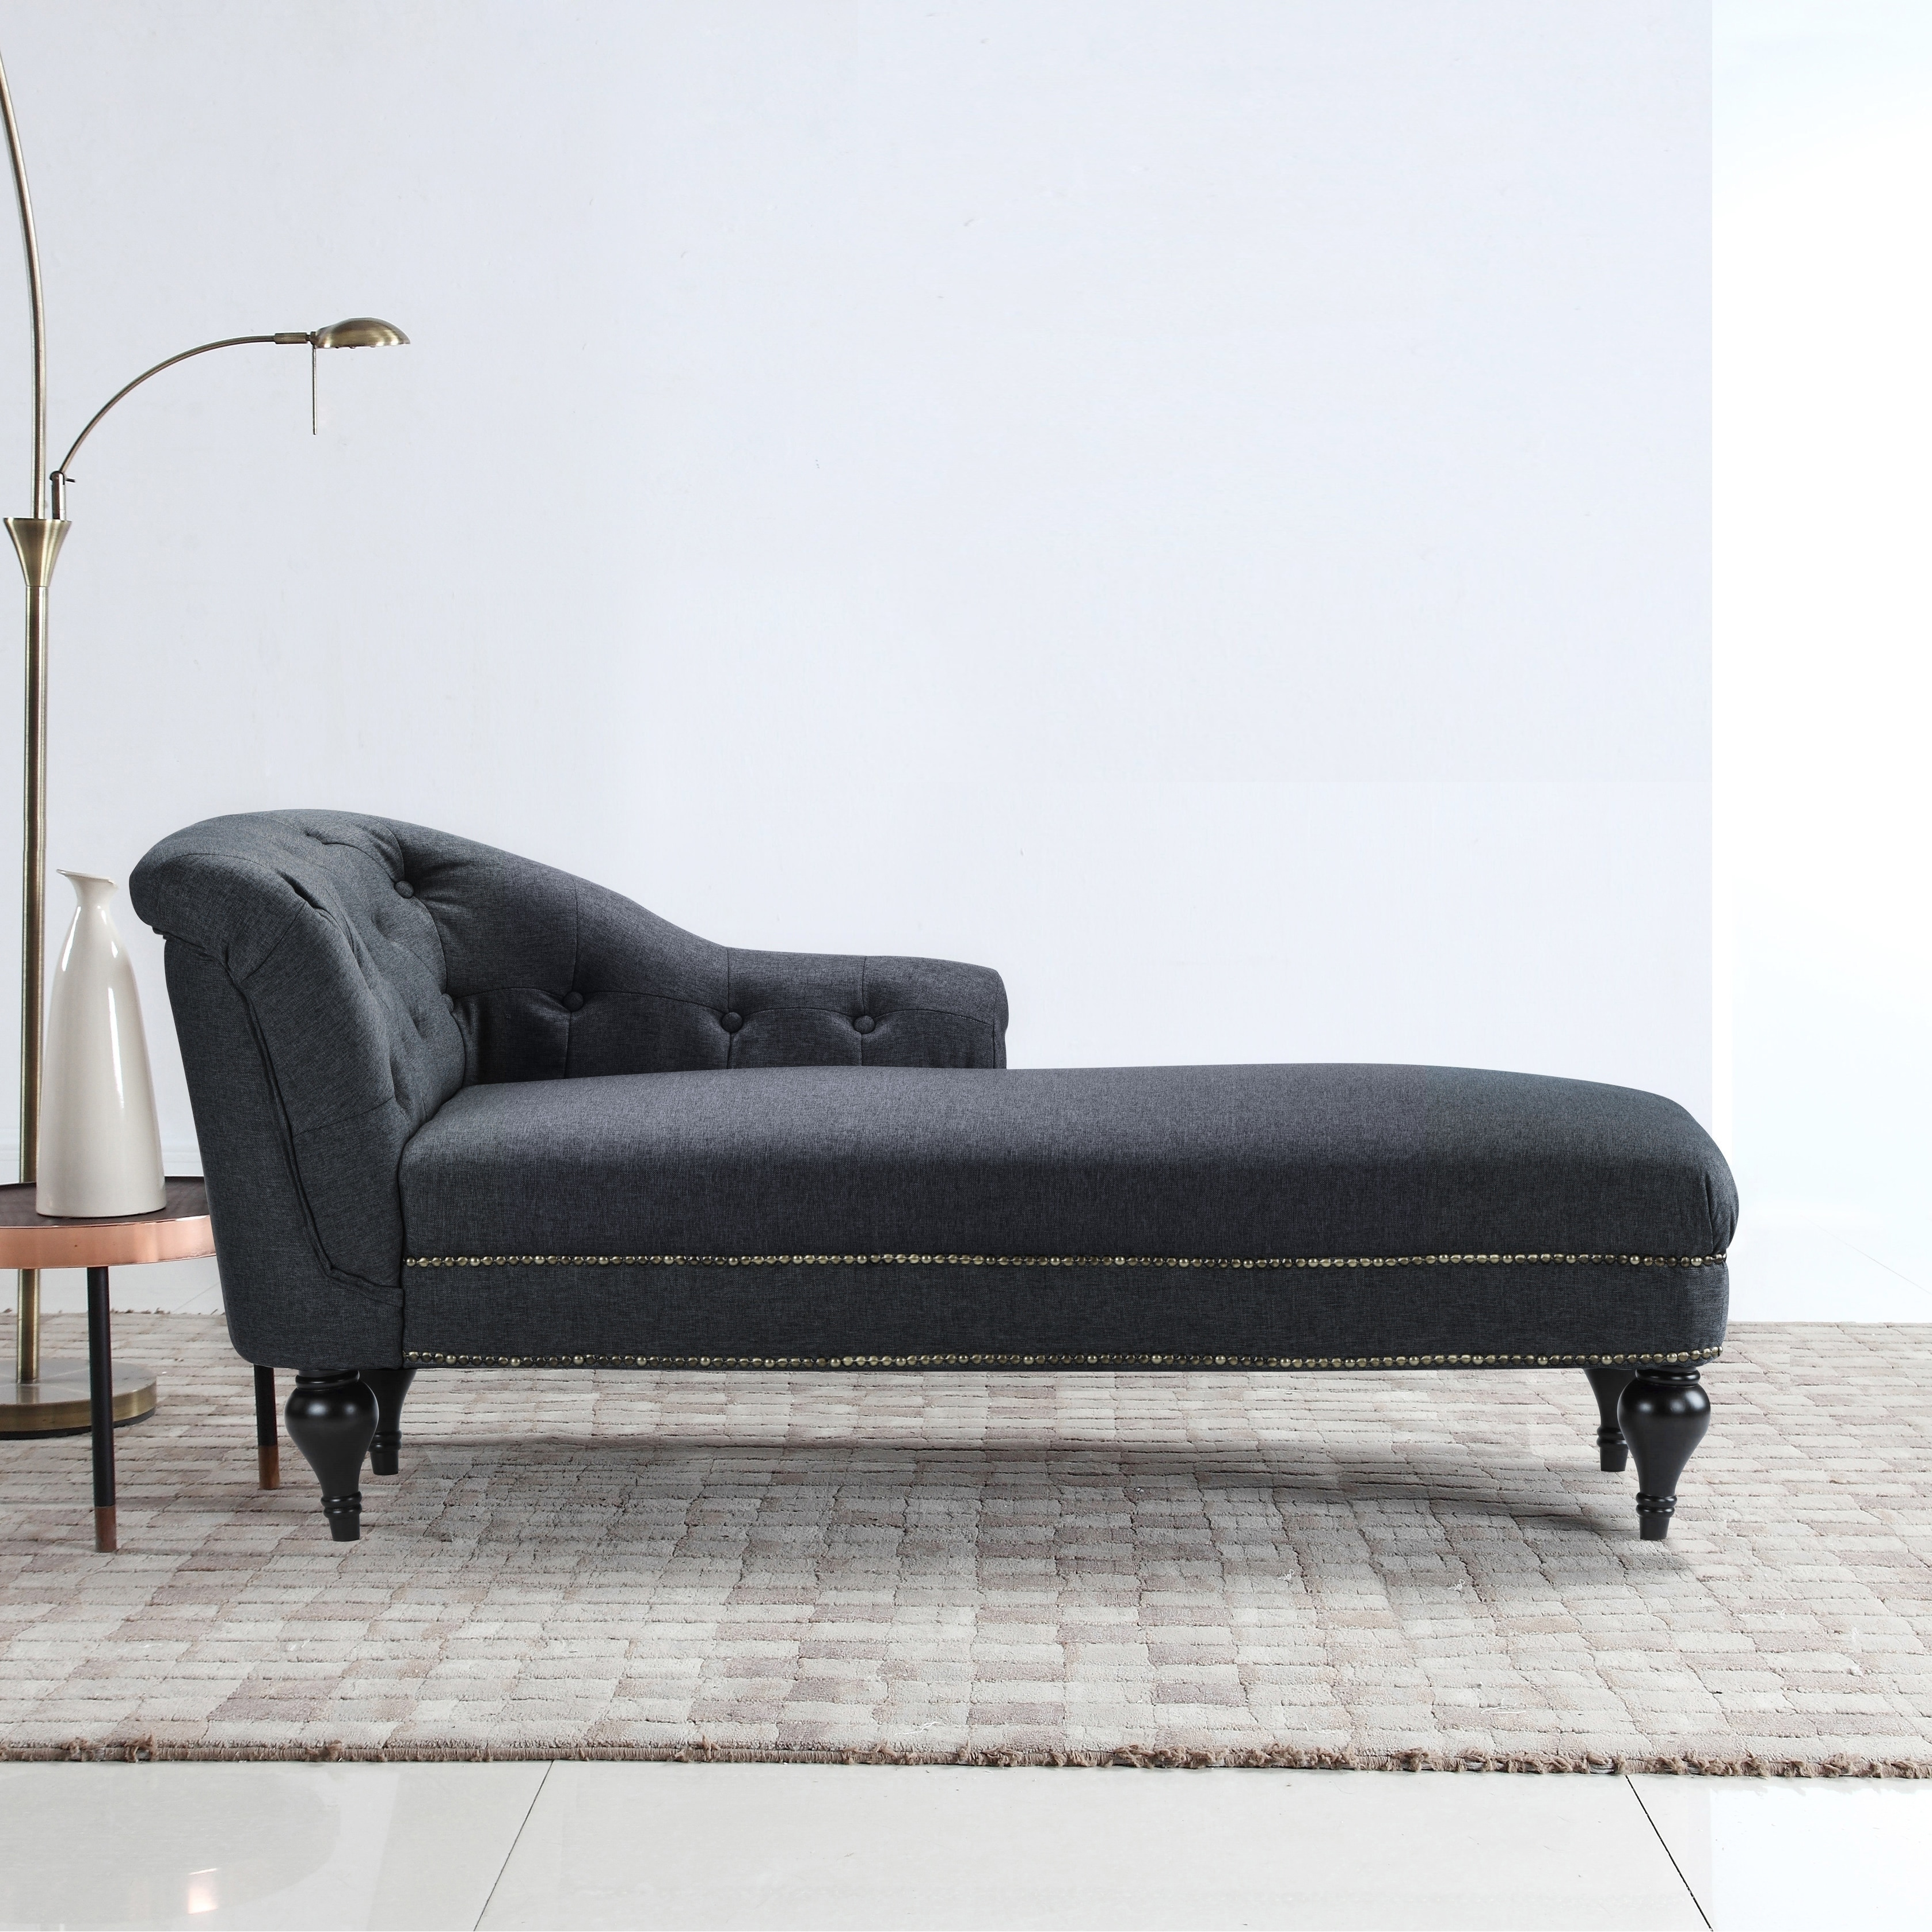 Shop elegant linen living room chaise lounge nailhead button accents free shipping today overstock com 17653762